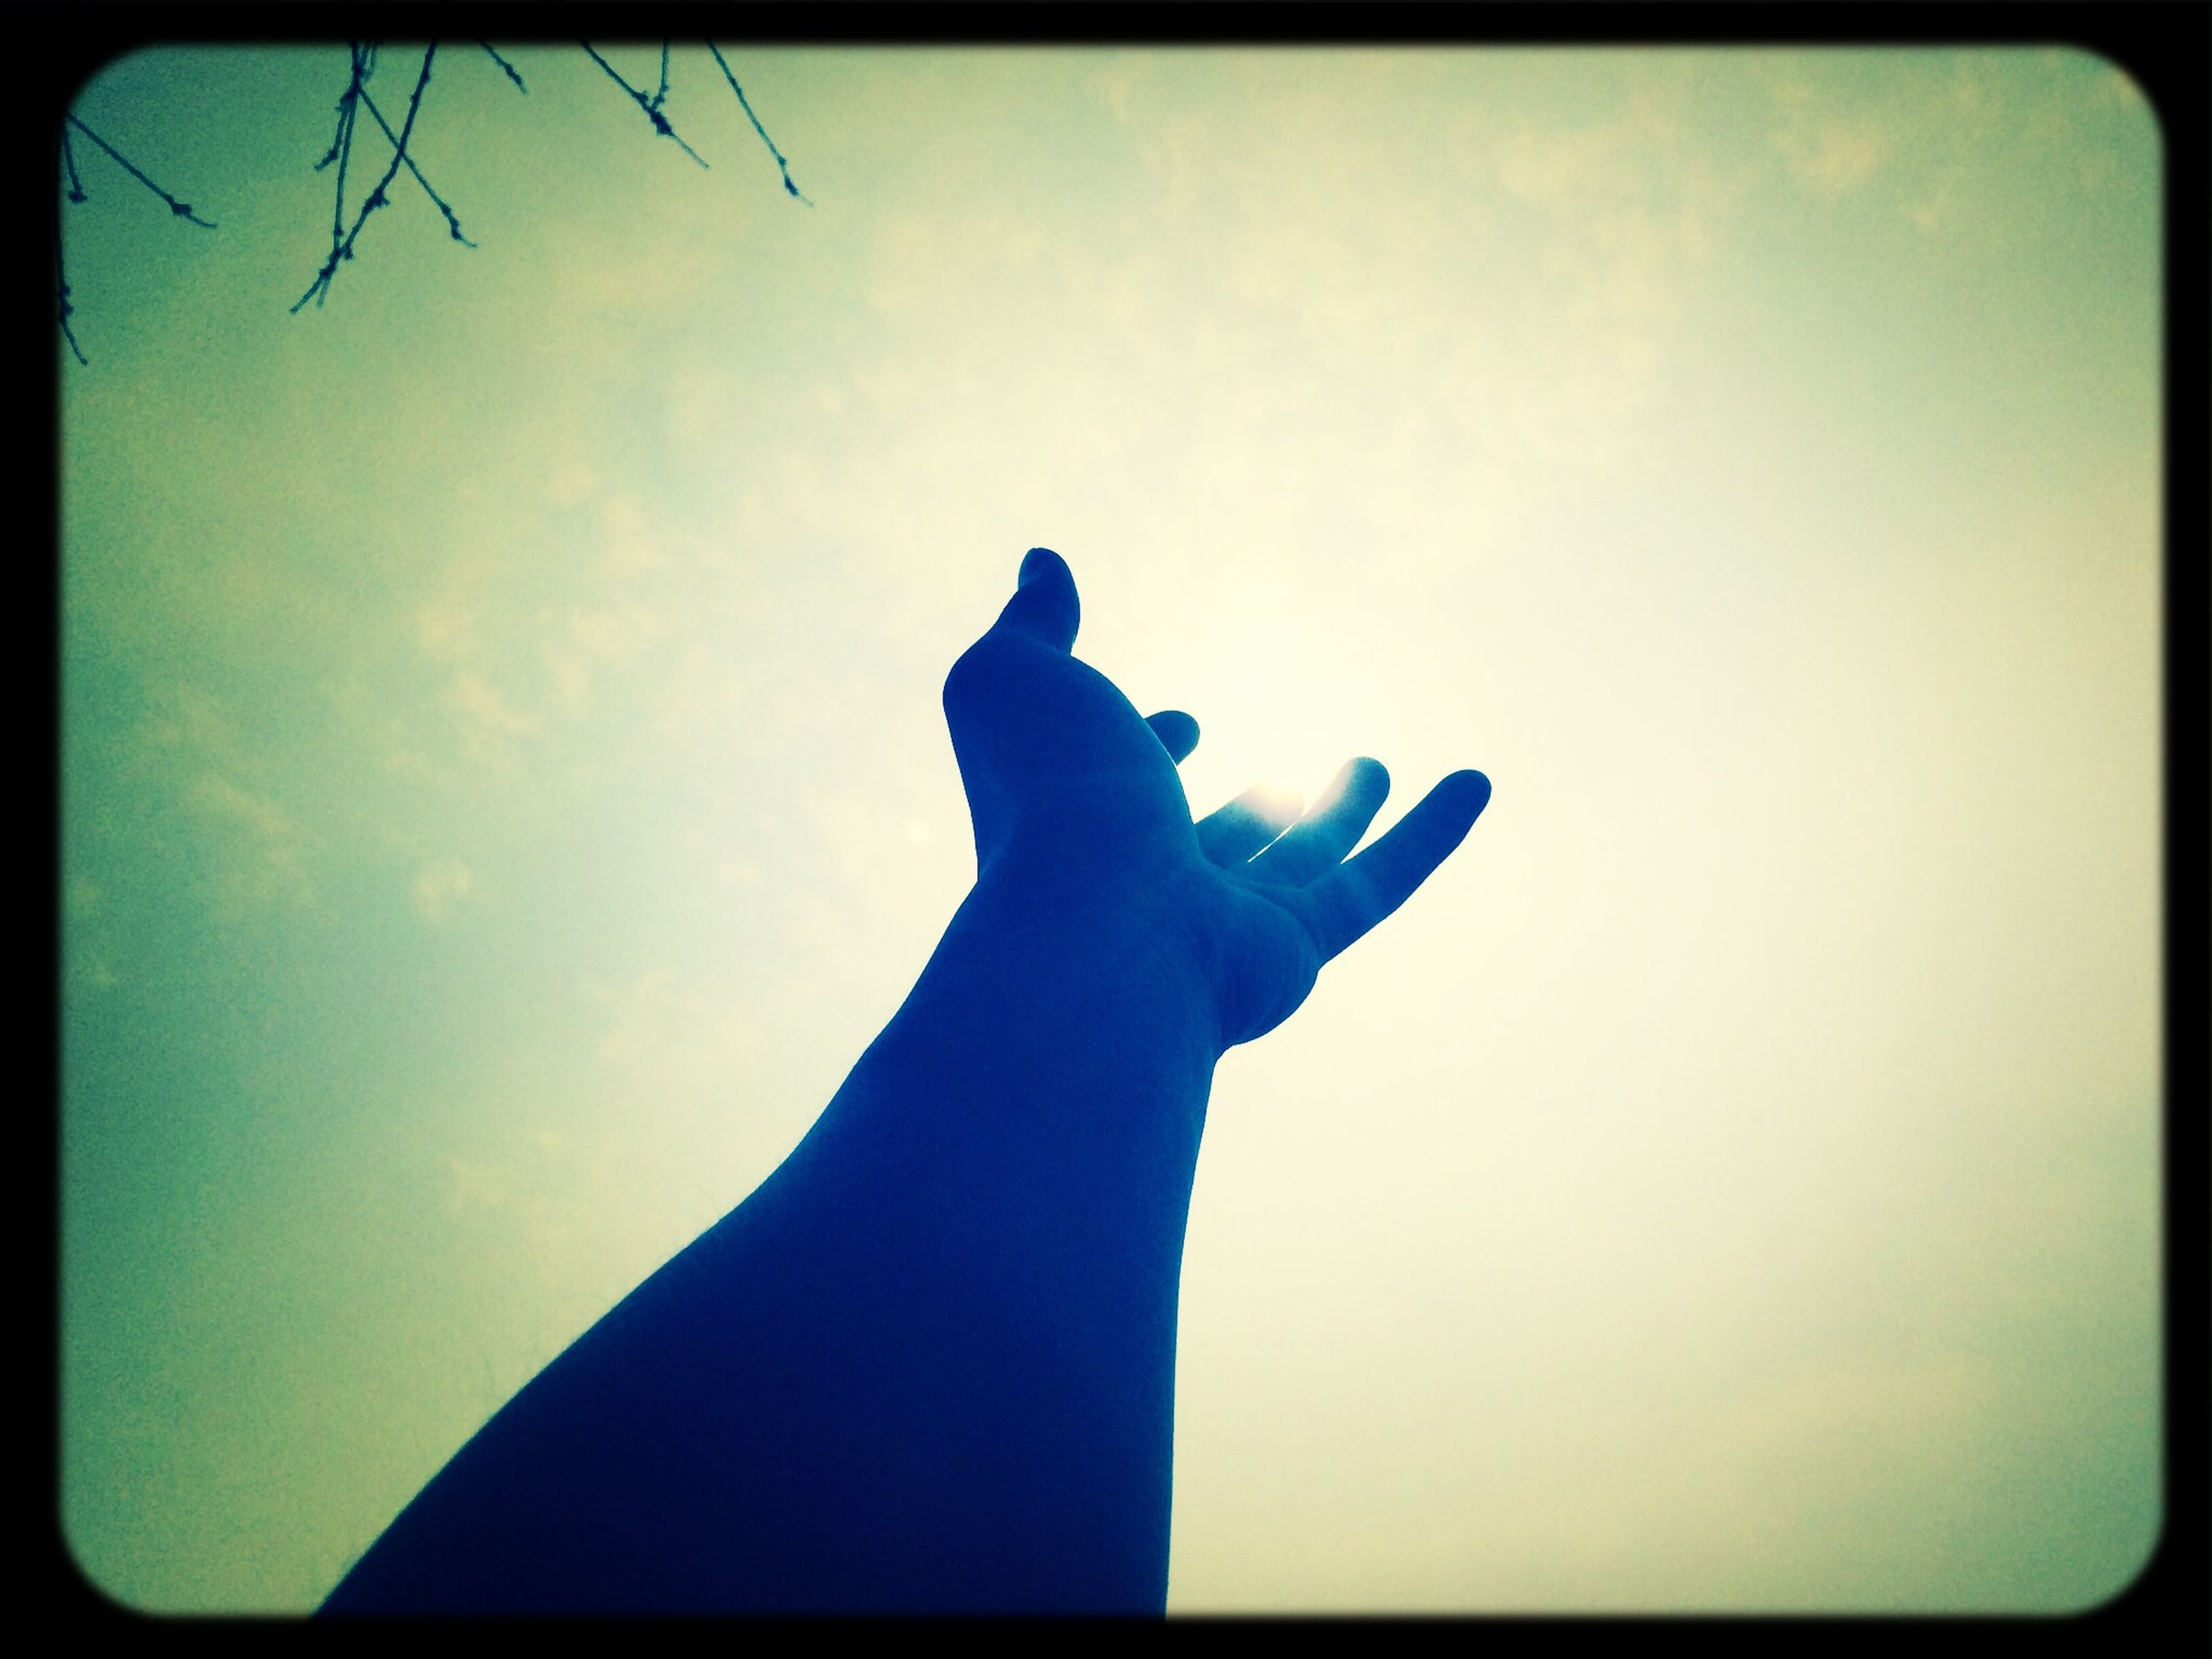 transfer print, auto post production filter, sky, lifestyles, leisure activity, person, low angle view, blue, cloud - sky, holding, men, silhouette, part of, unrecognizable person, human finger, personal perspective